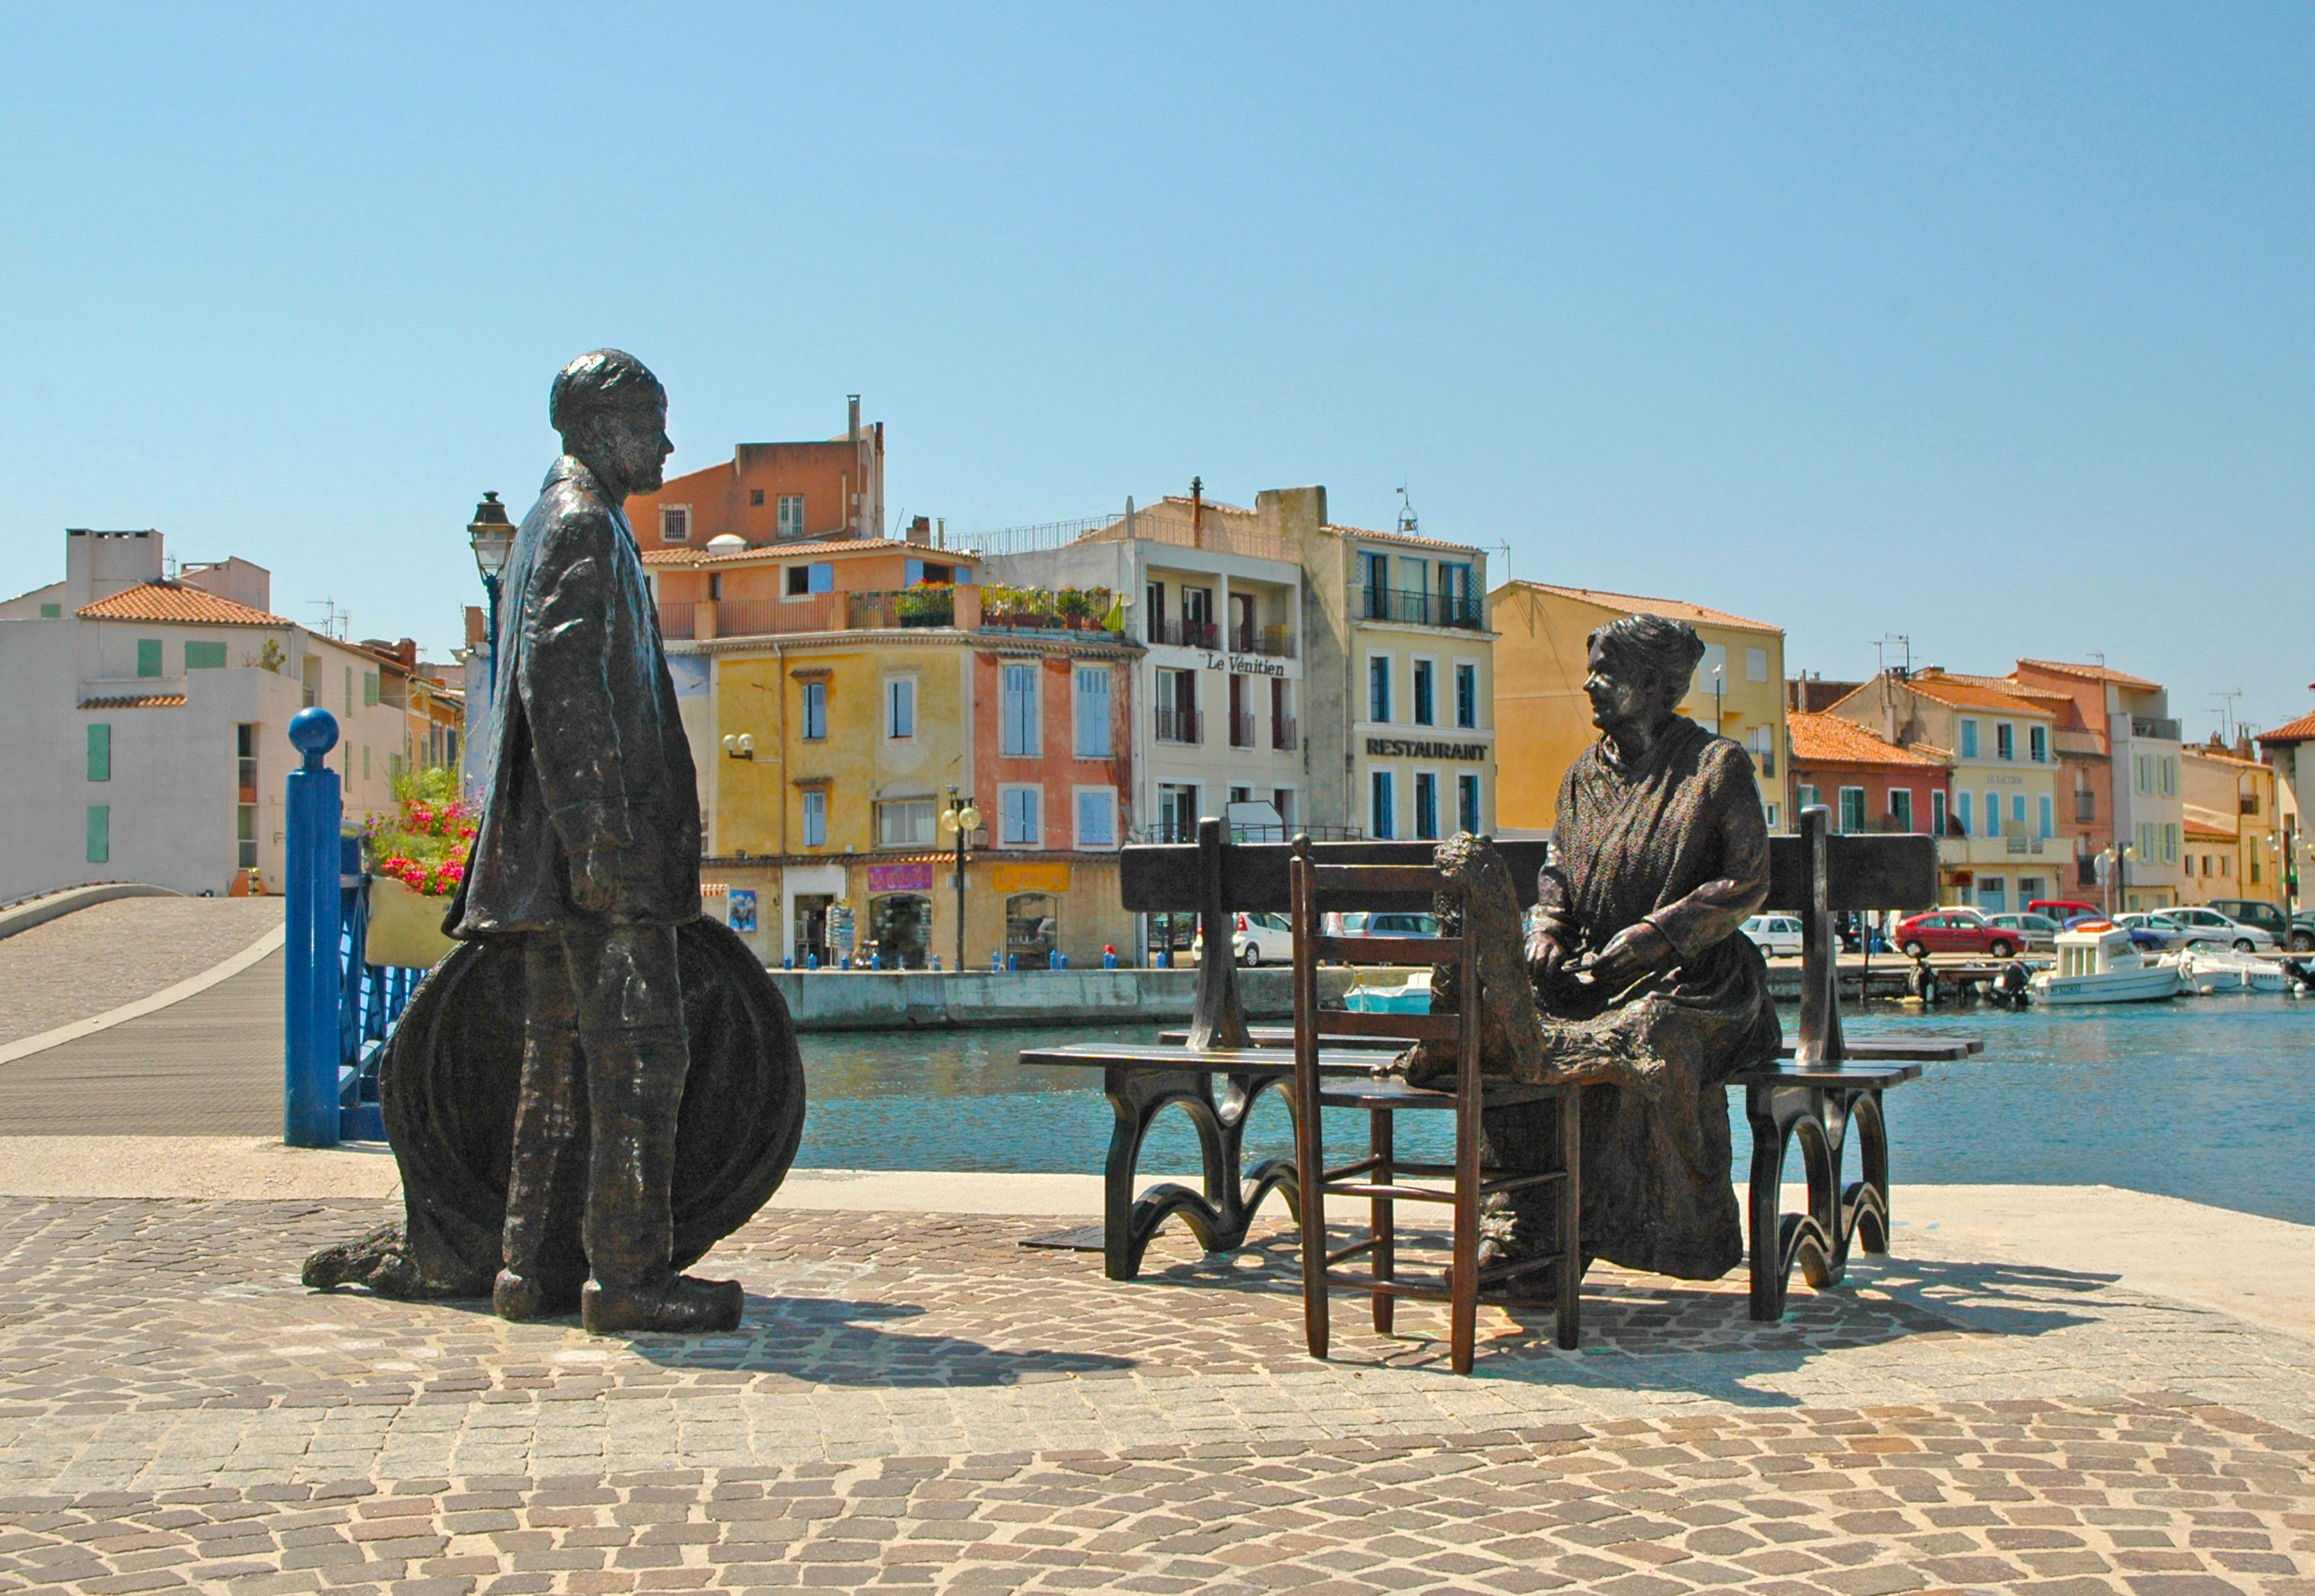 Statues - the fisherman and the sweeper